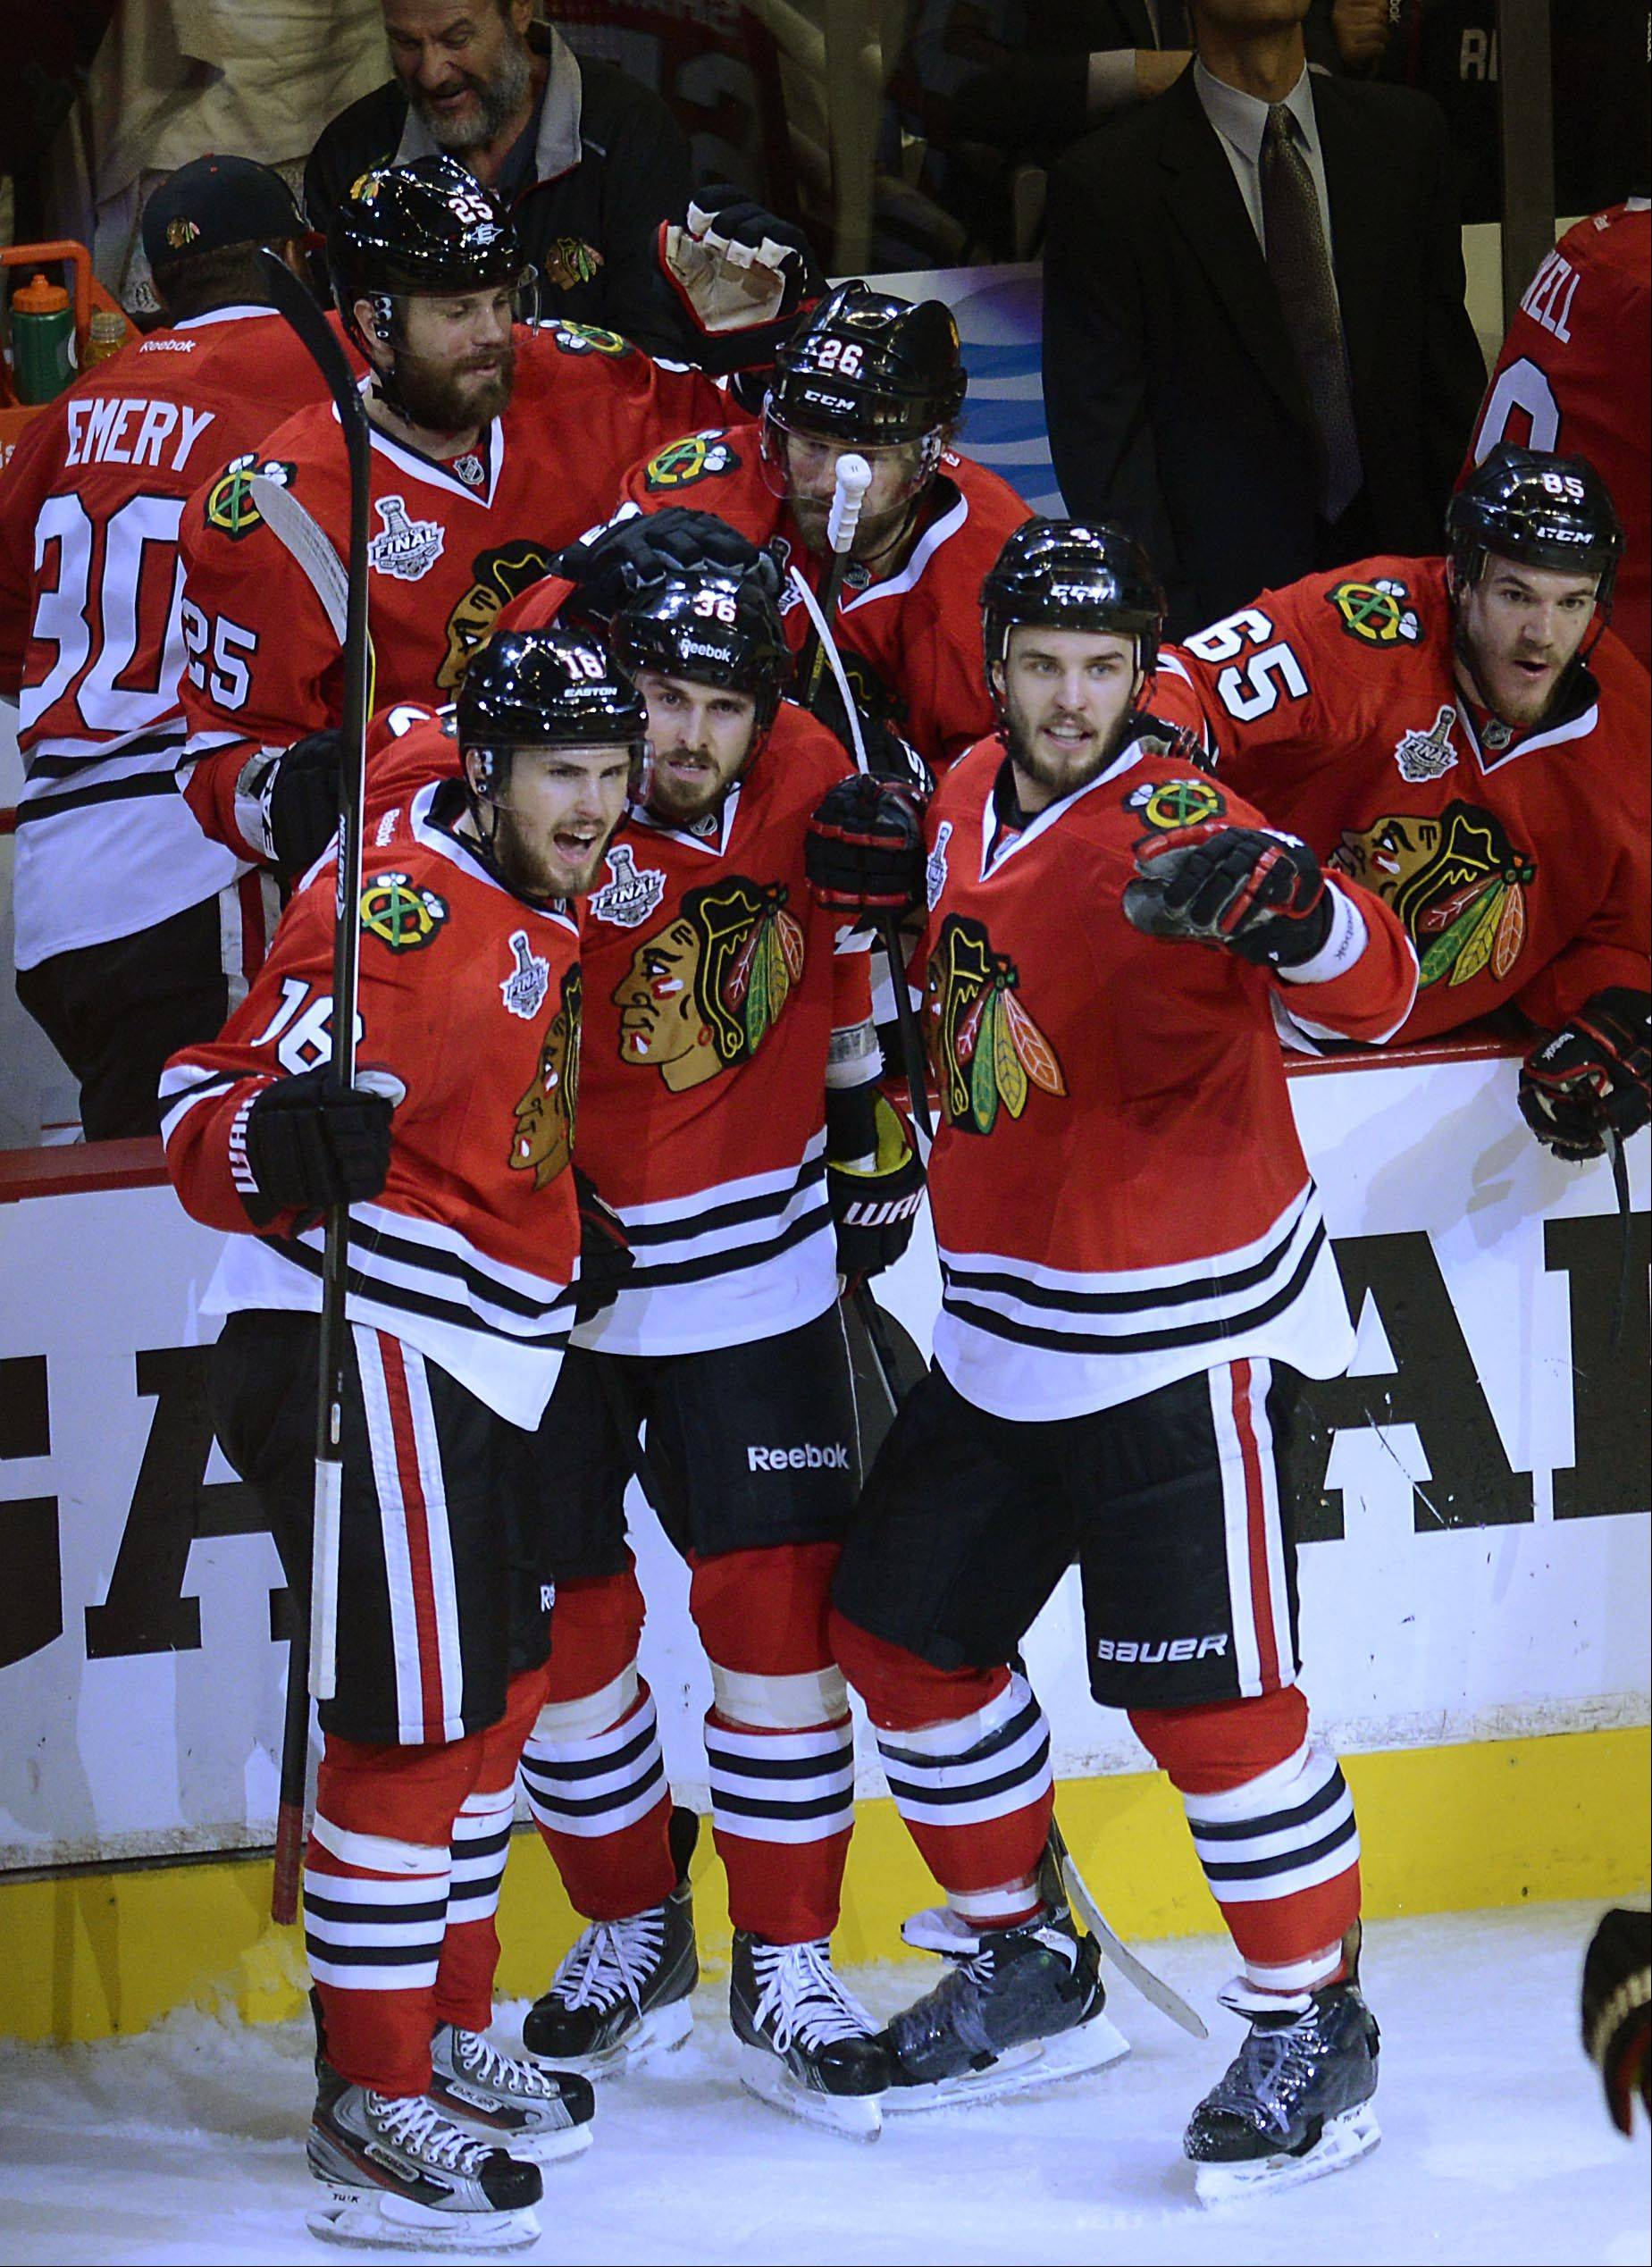 Dave Bolland is surrounded by teammates after his empty-net goal late in the third period that sealed the Hawks' Game 5 victory over Boston in the Stanley Cup Final last season.